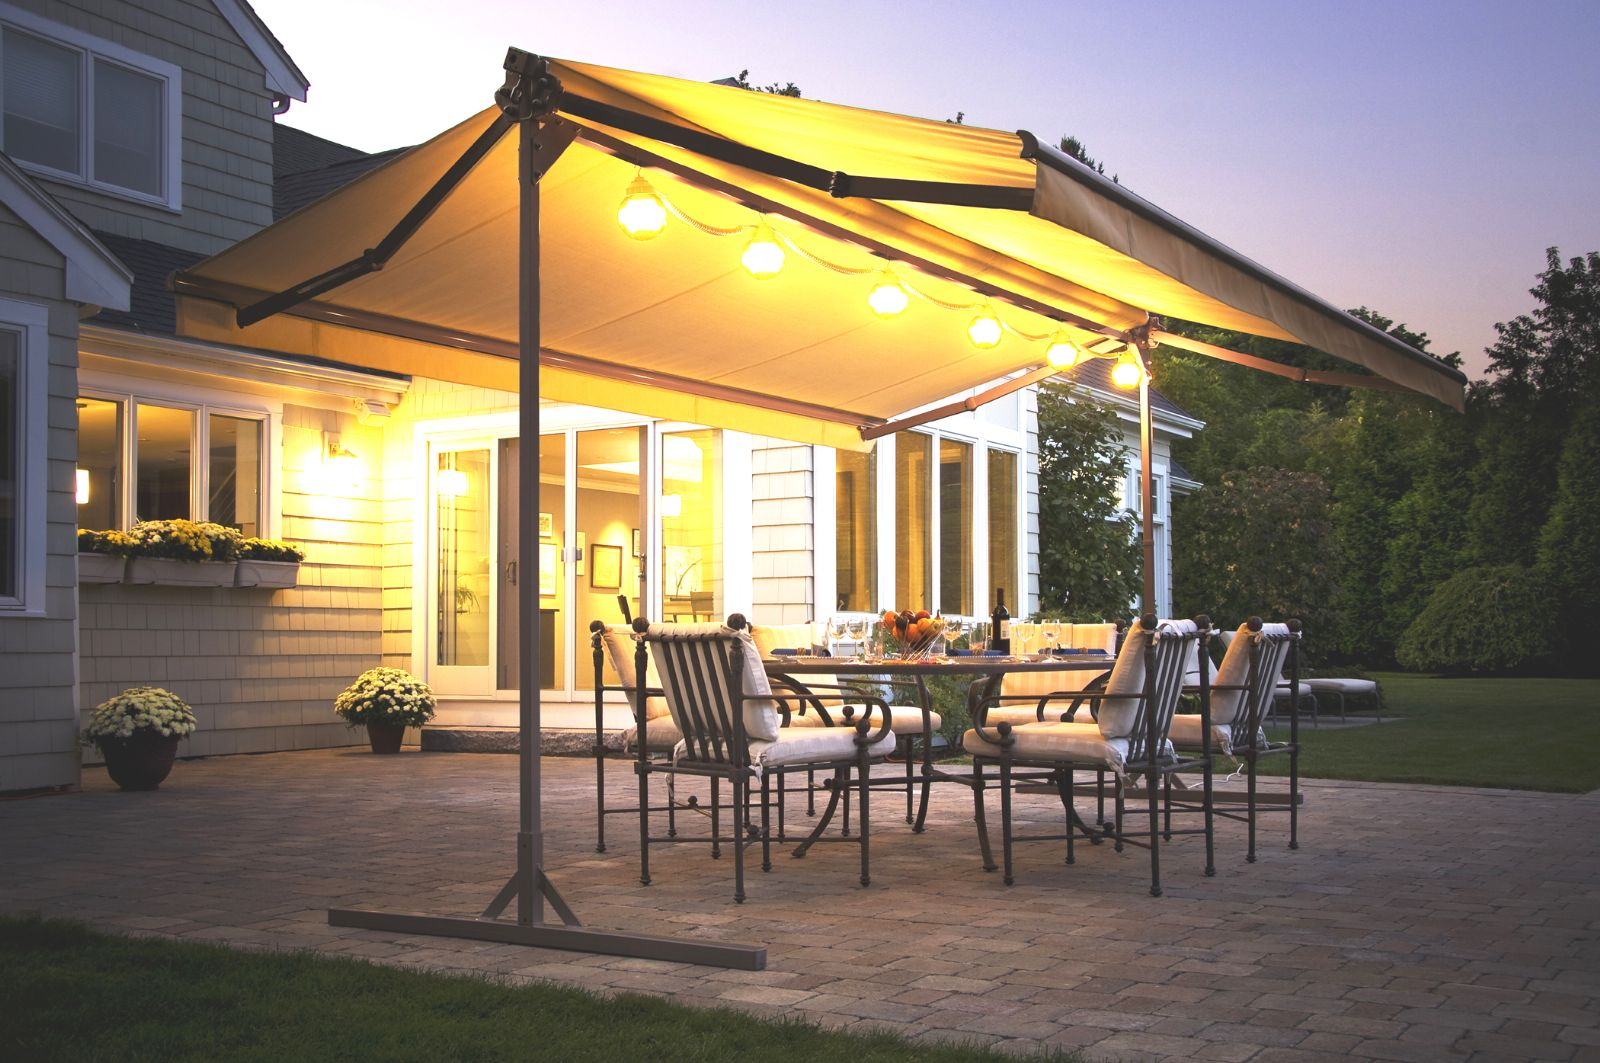 Sunsetter Awnings | Springville Door & Window, Inc.